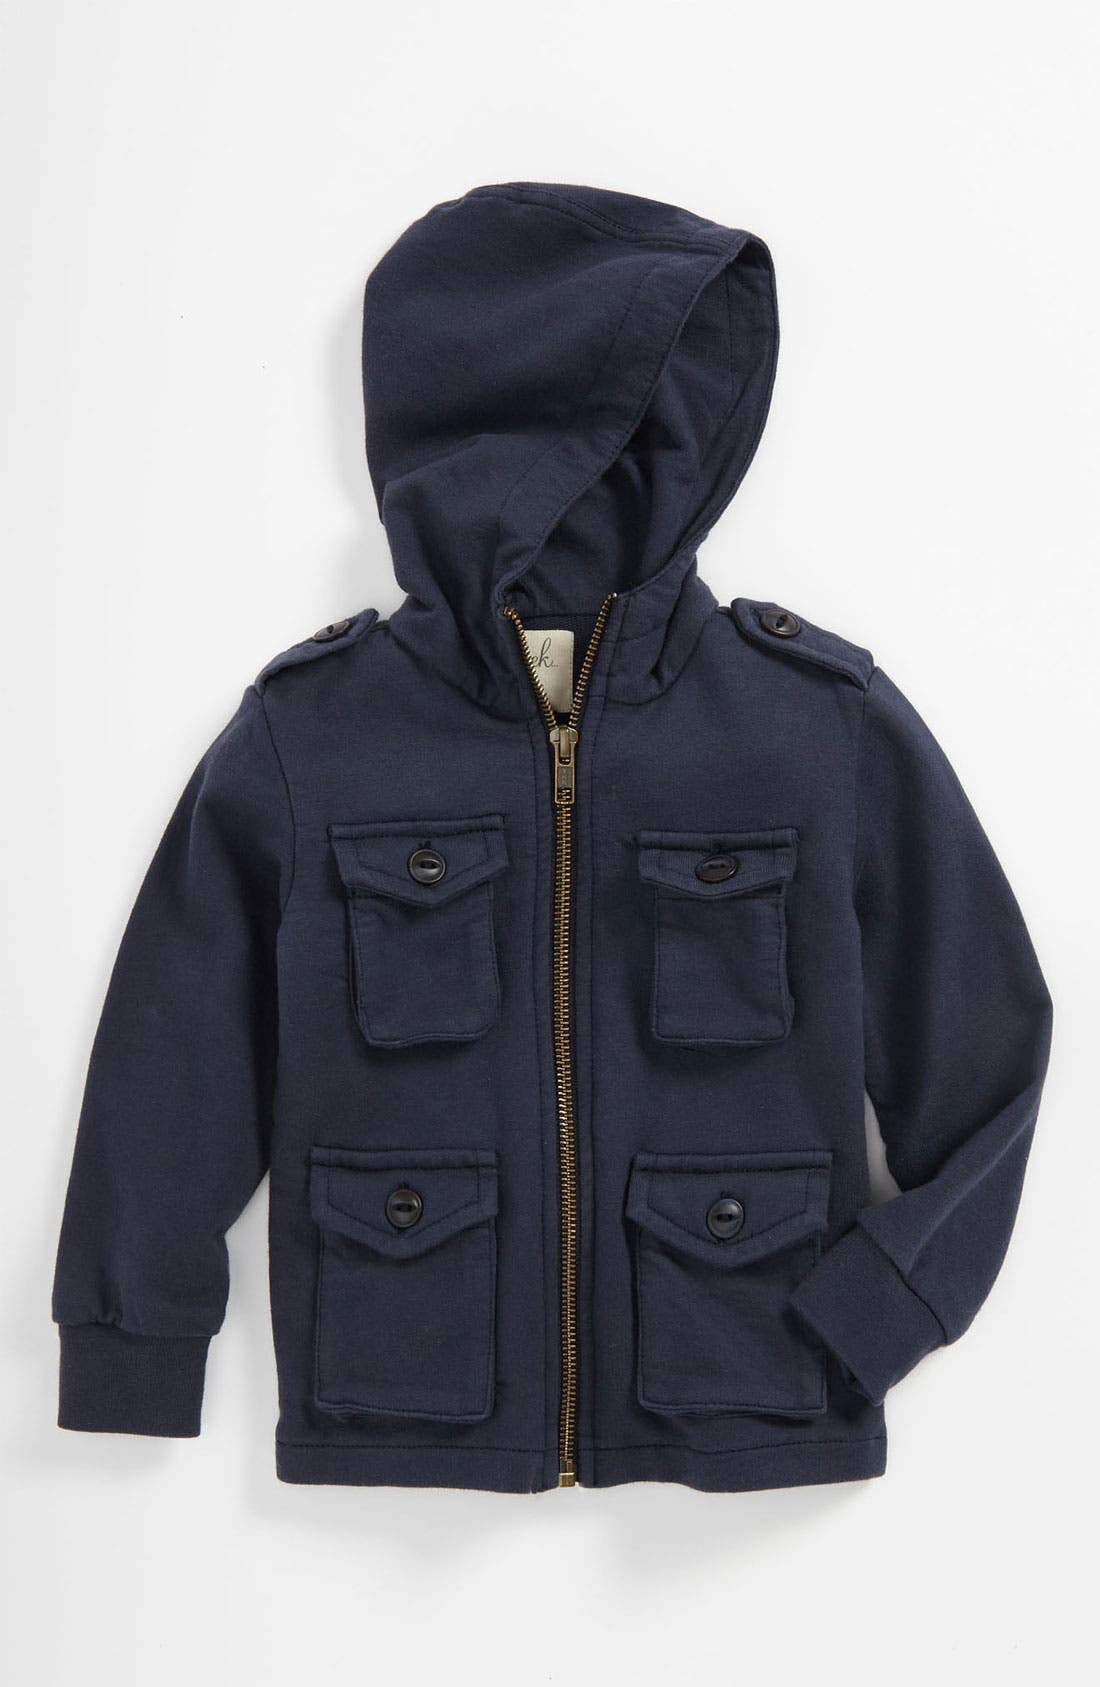 Alternate Image 1 Selected - Peek 'Durango' Utility Jacket (Baby)